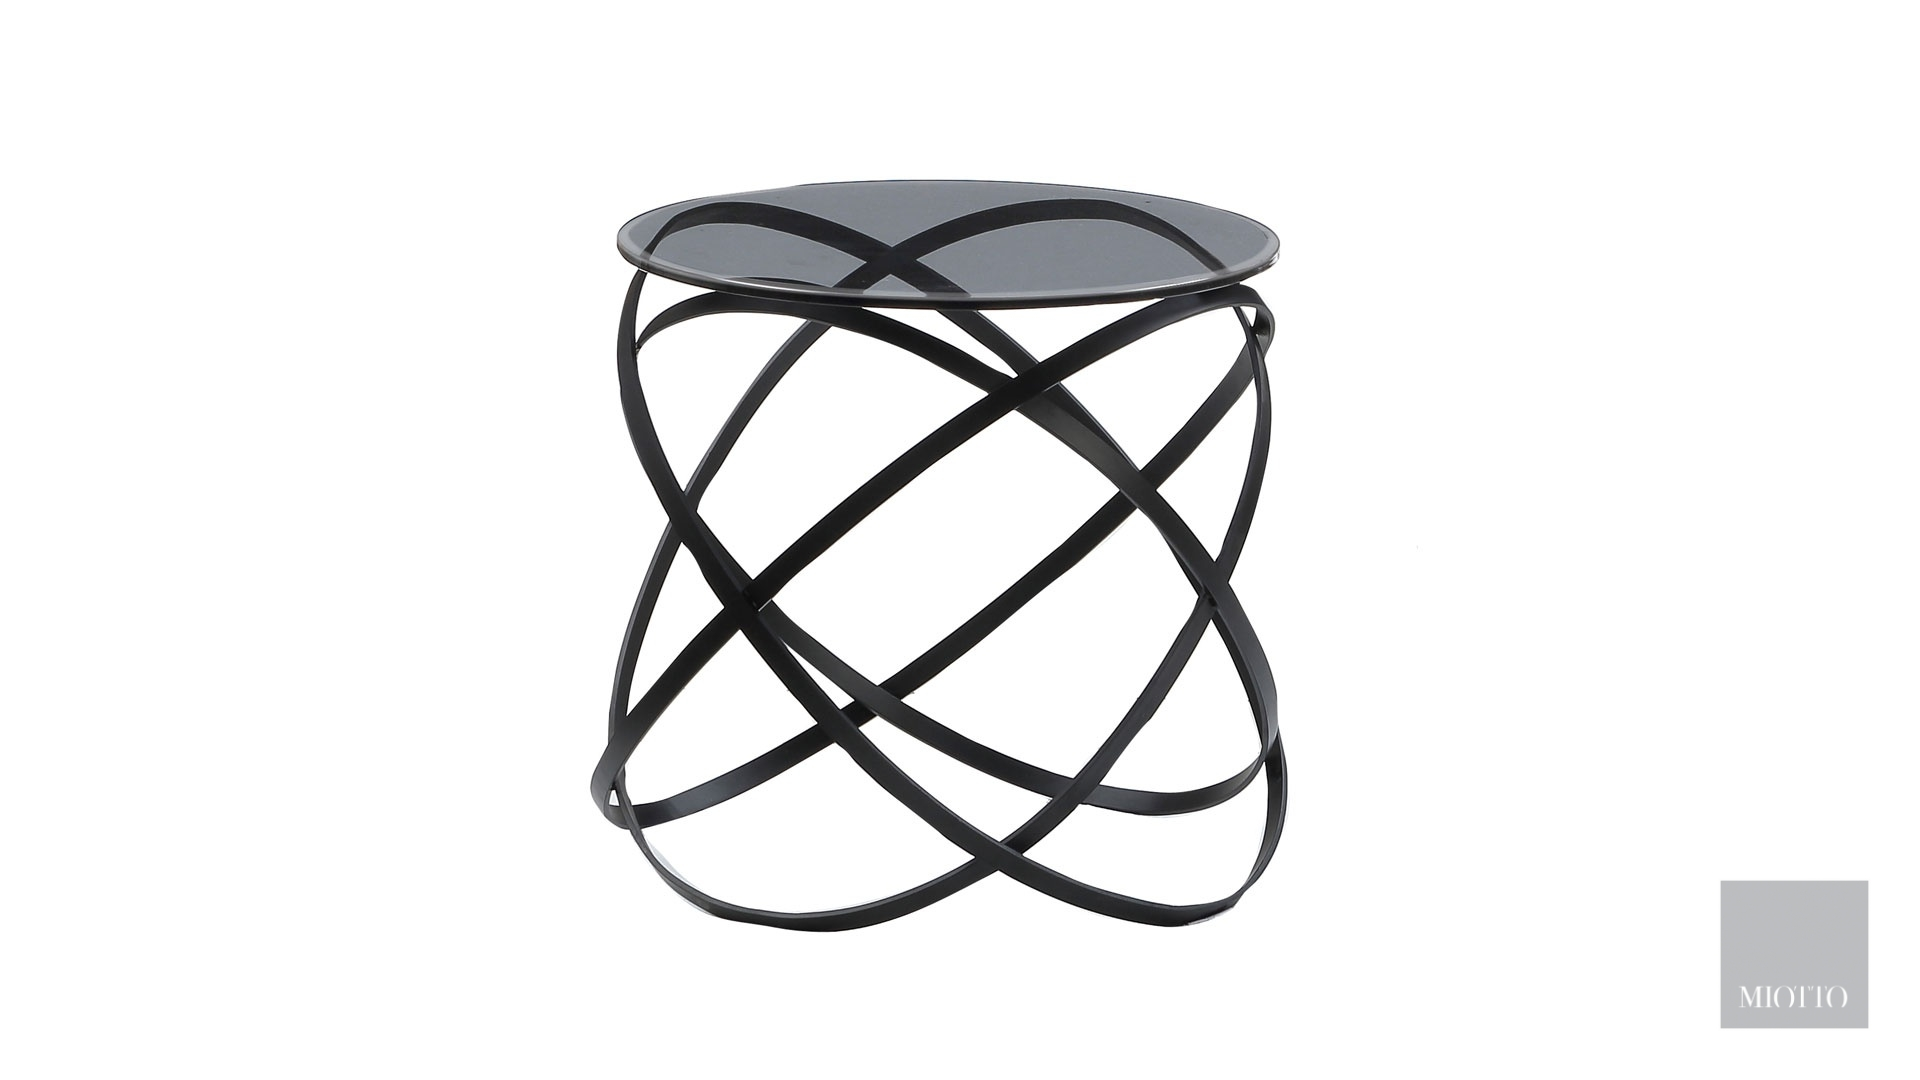 miotto_Paola-side-table_web